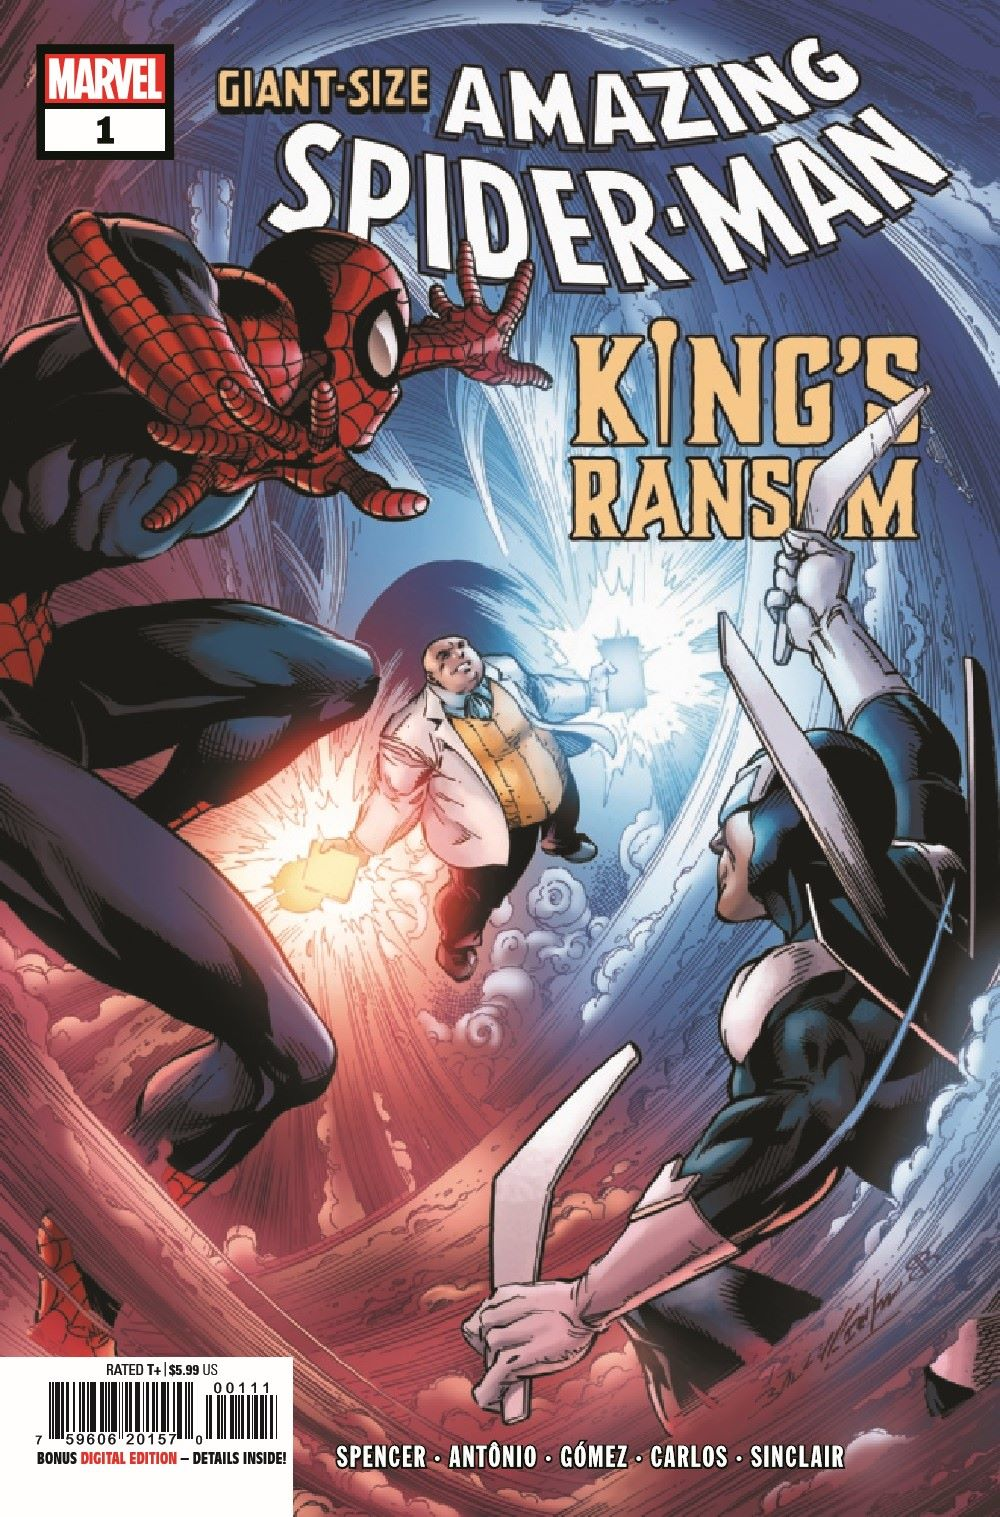 GSASMKINGR2021001_Preview-1 ComicList Previews: GIANT-SIZE AMAZING SPIDER-MAN KING'S RANSOM #1